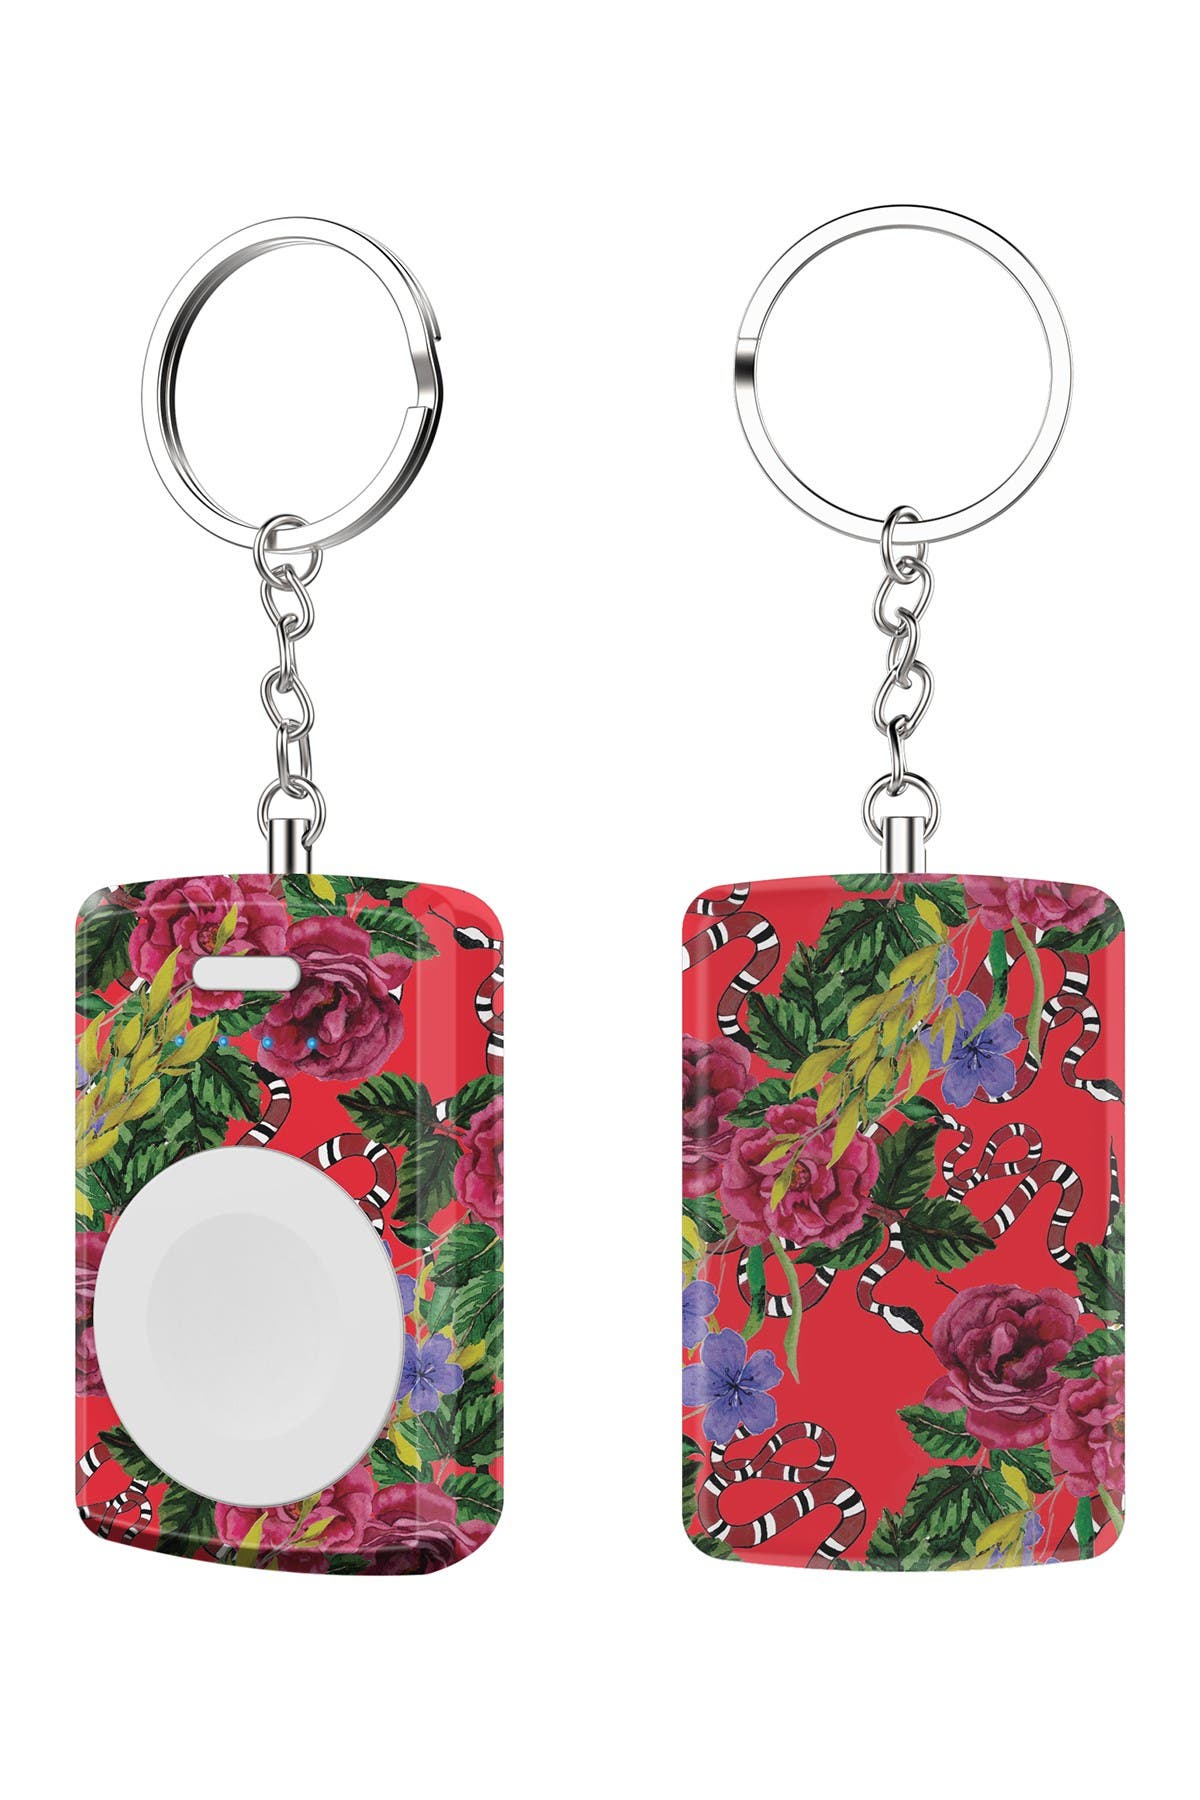 Image of Tech Elements Red Floral Apple Watch Portable Backup Battery & Charger